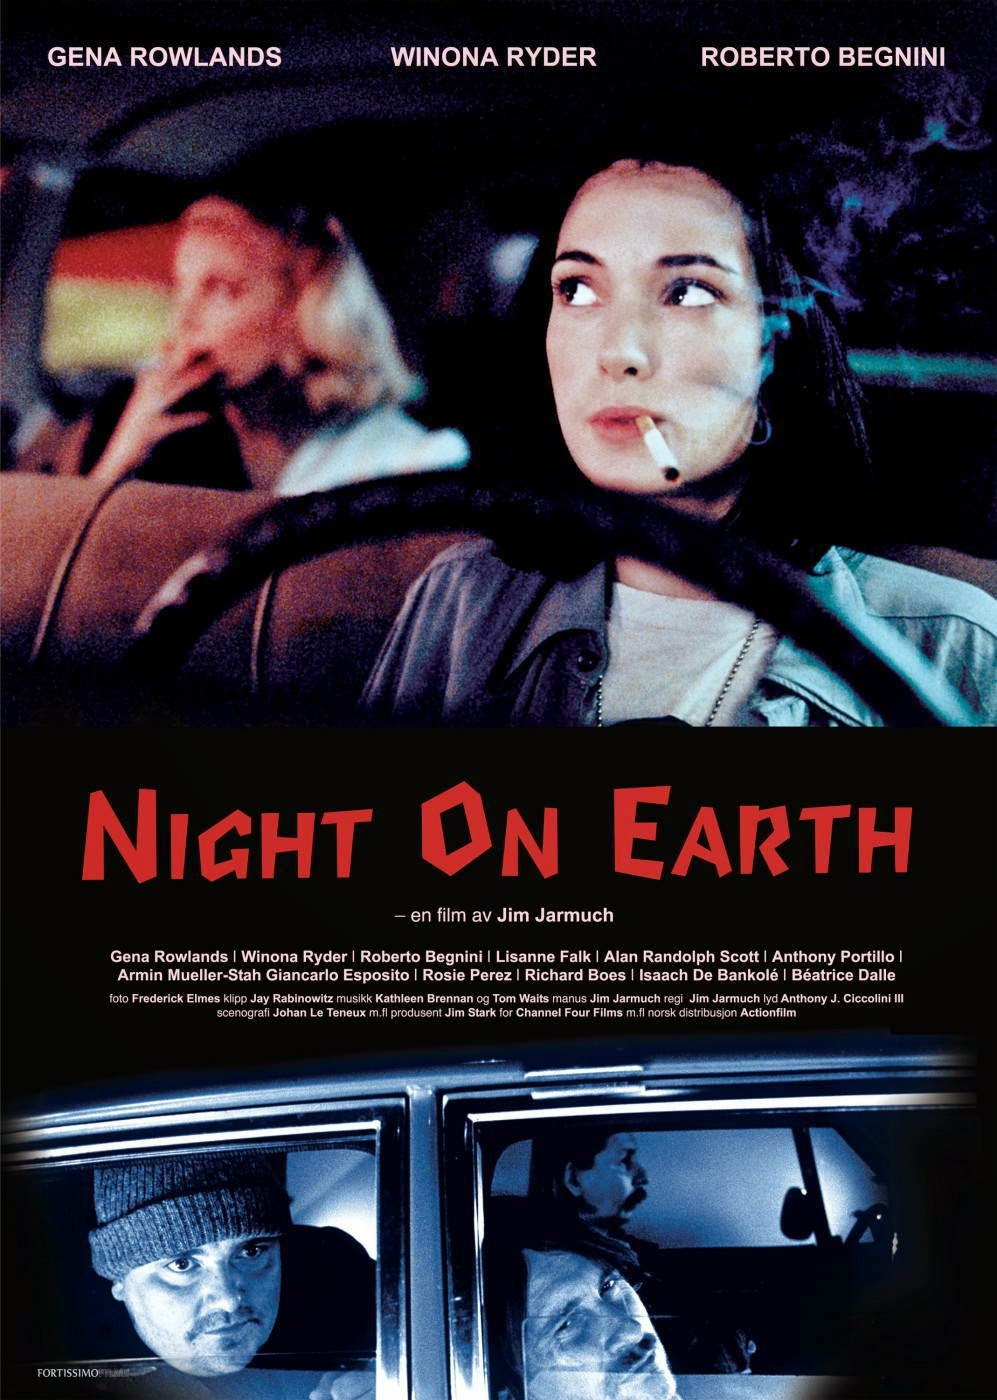 cartel Night on Earth 1991 Jim Jarmusch